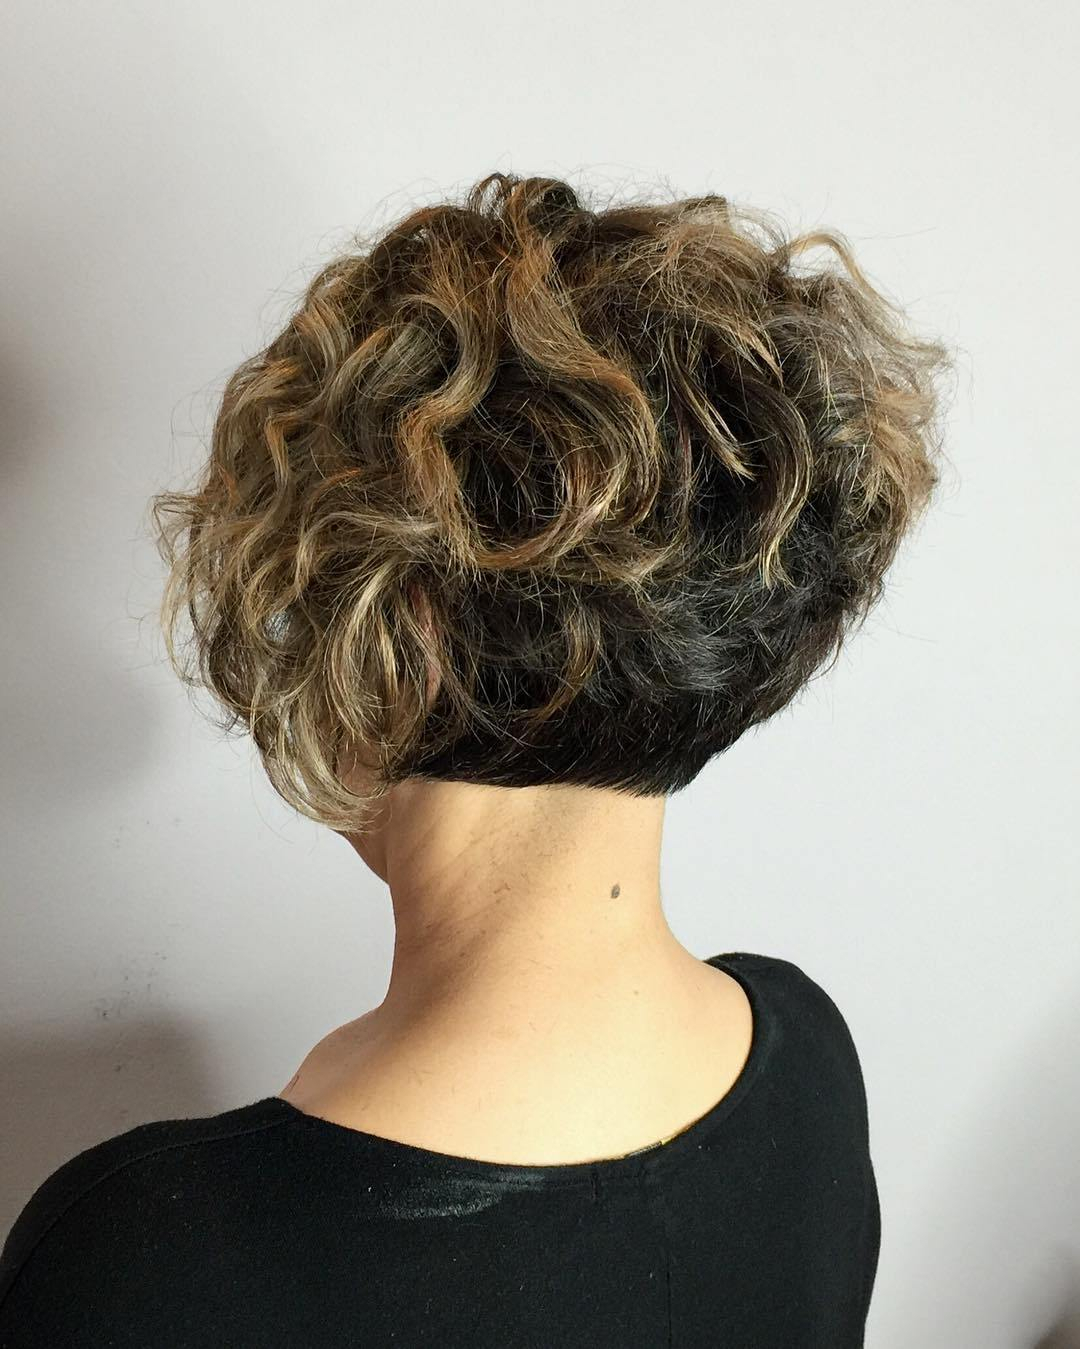 10 Trendy Ideas For Short Curly Hair 25 lively short haircuts for curly hair short wavy curly hairstyle 3 2020